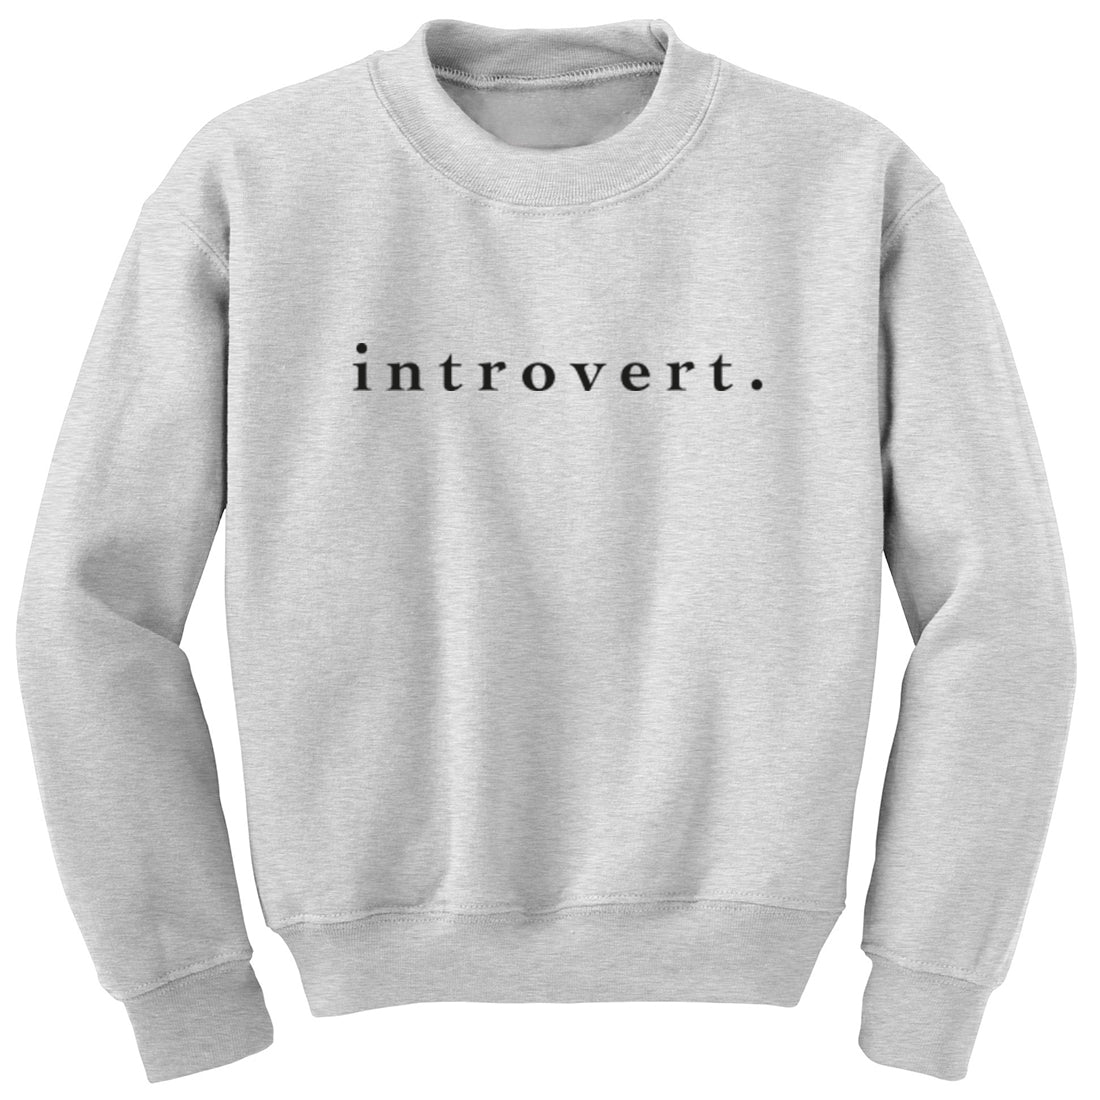 Introvert. Unisex Jumper K1771